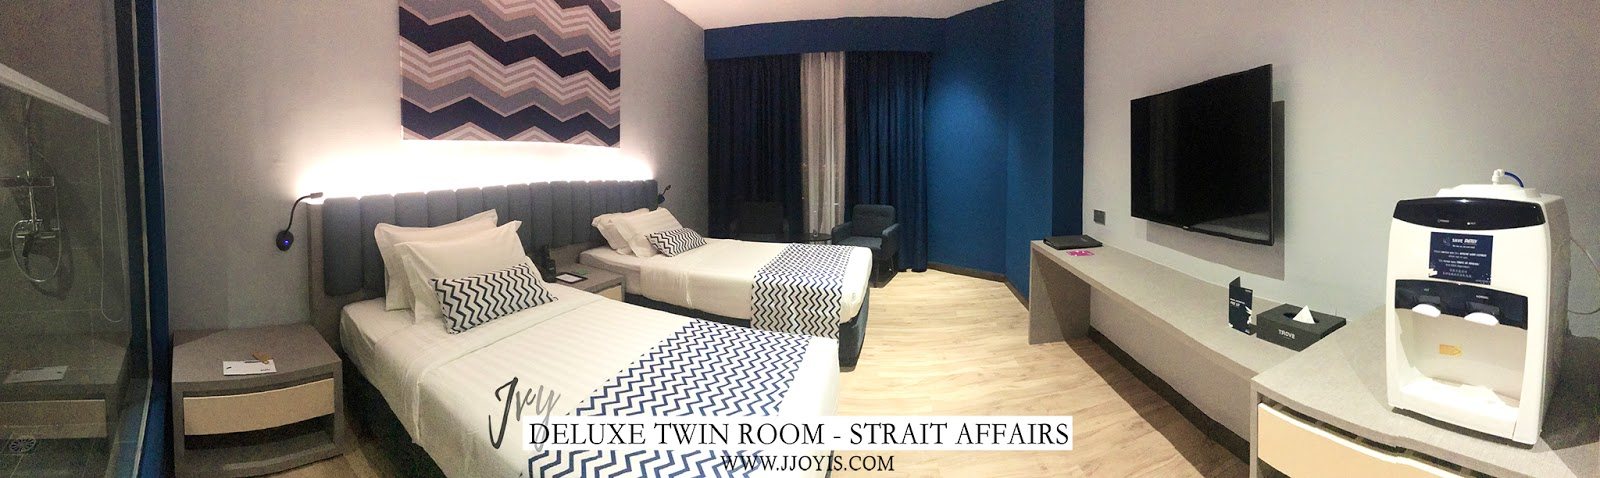 deluxe room twin trove hotel jb review